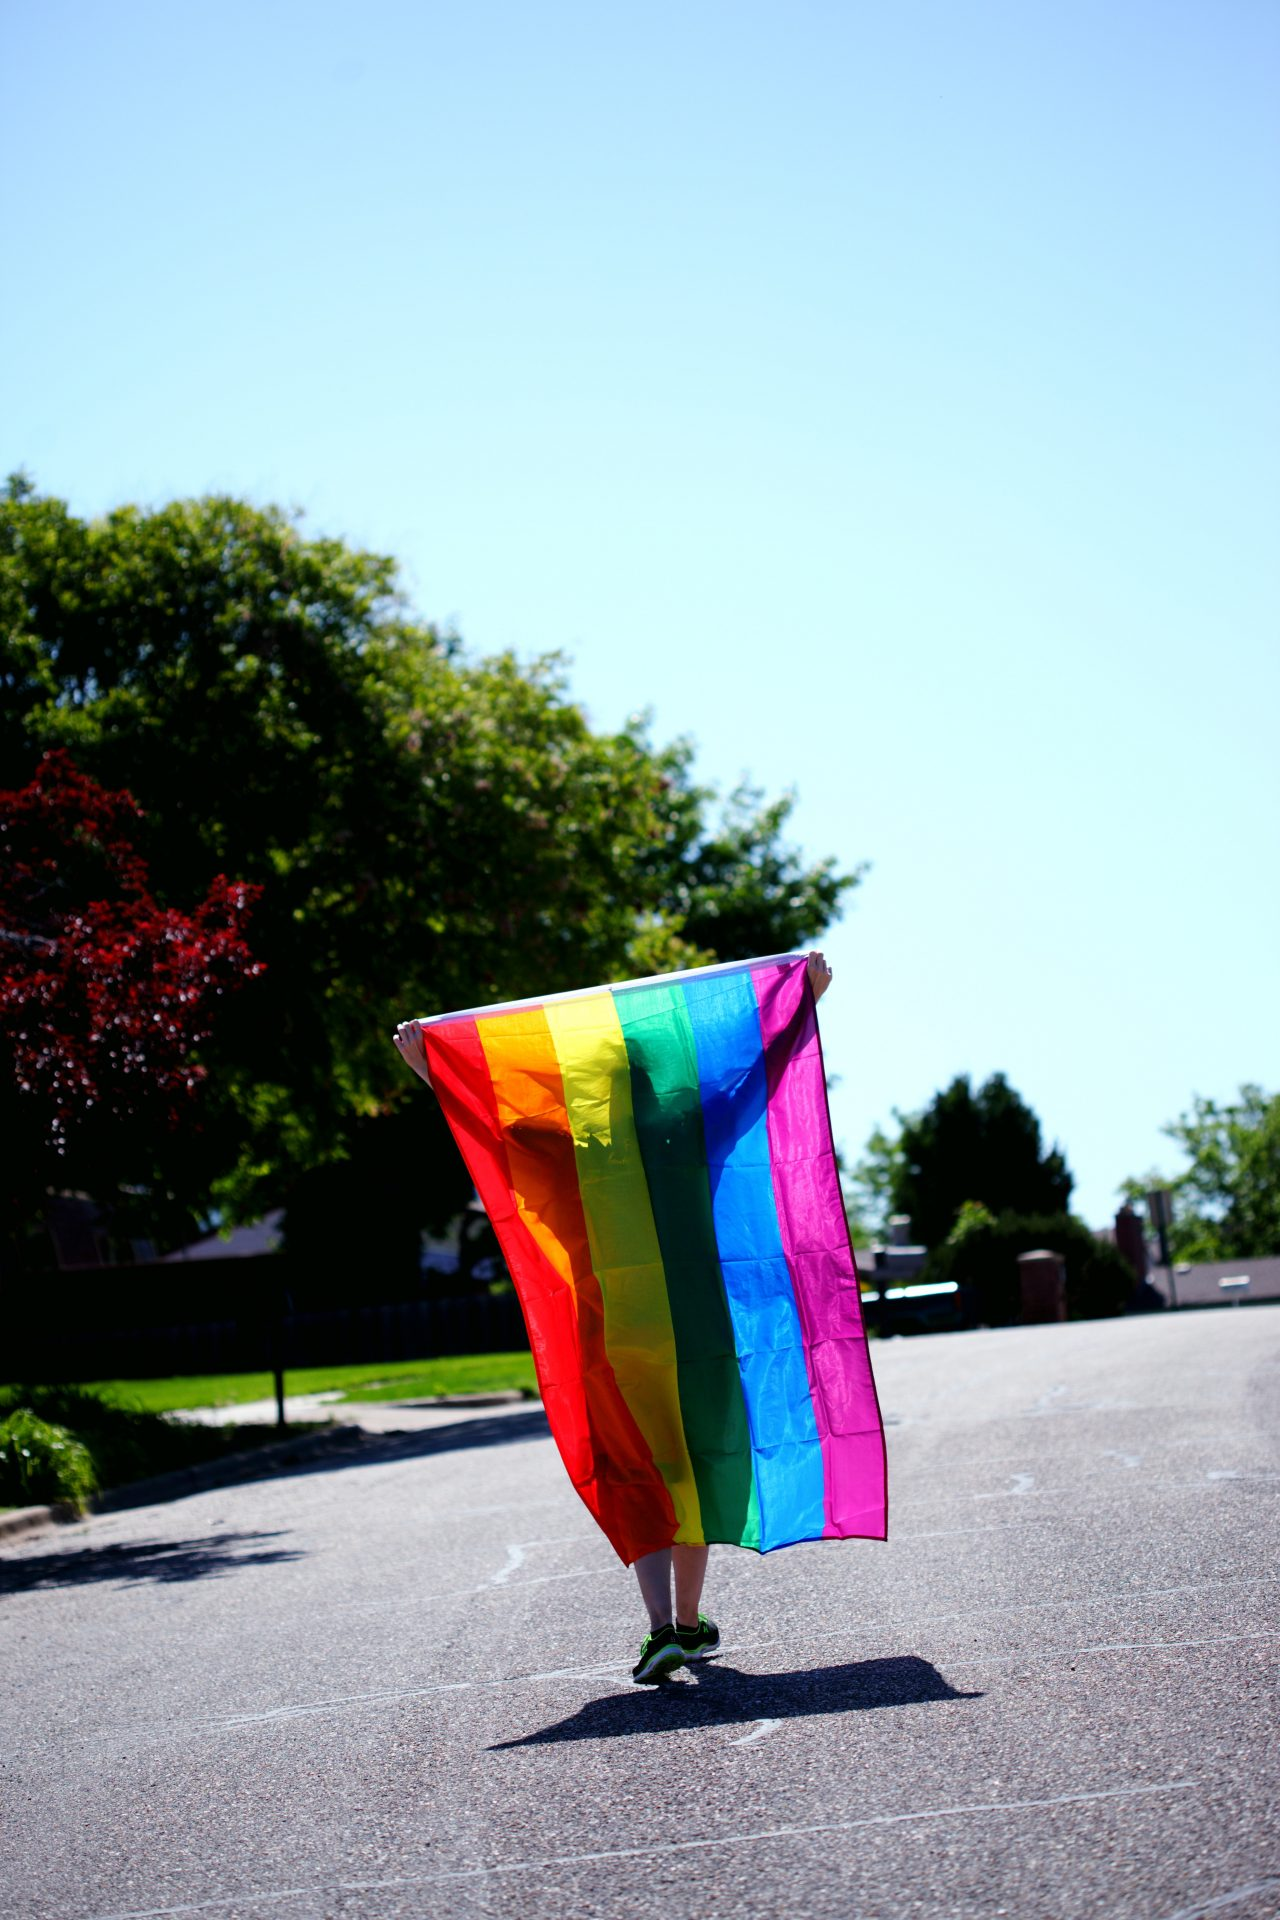 person-walking-while-holding-rainbow-colored-flag-2433122-1280x1920.jpg